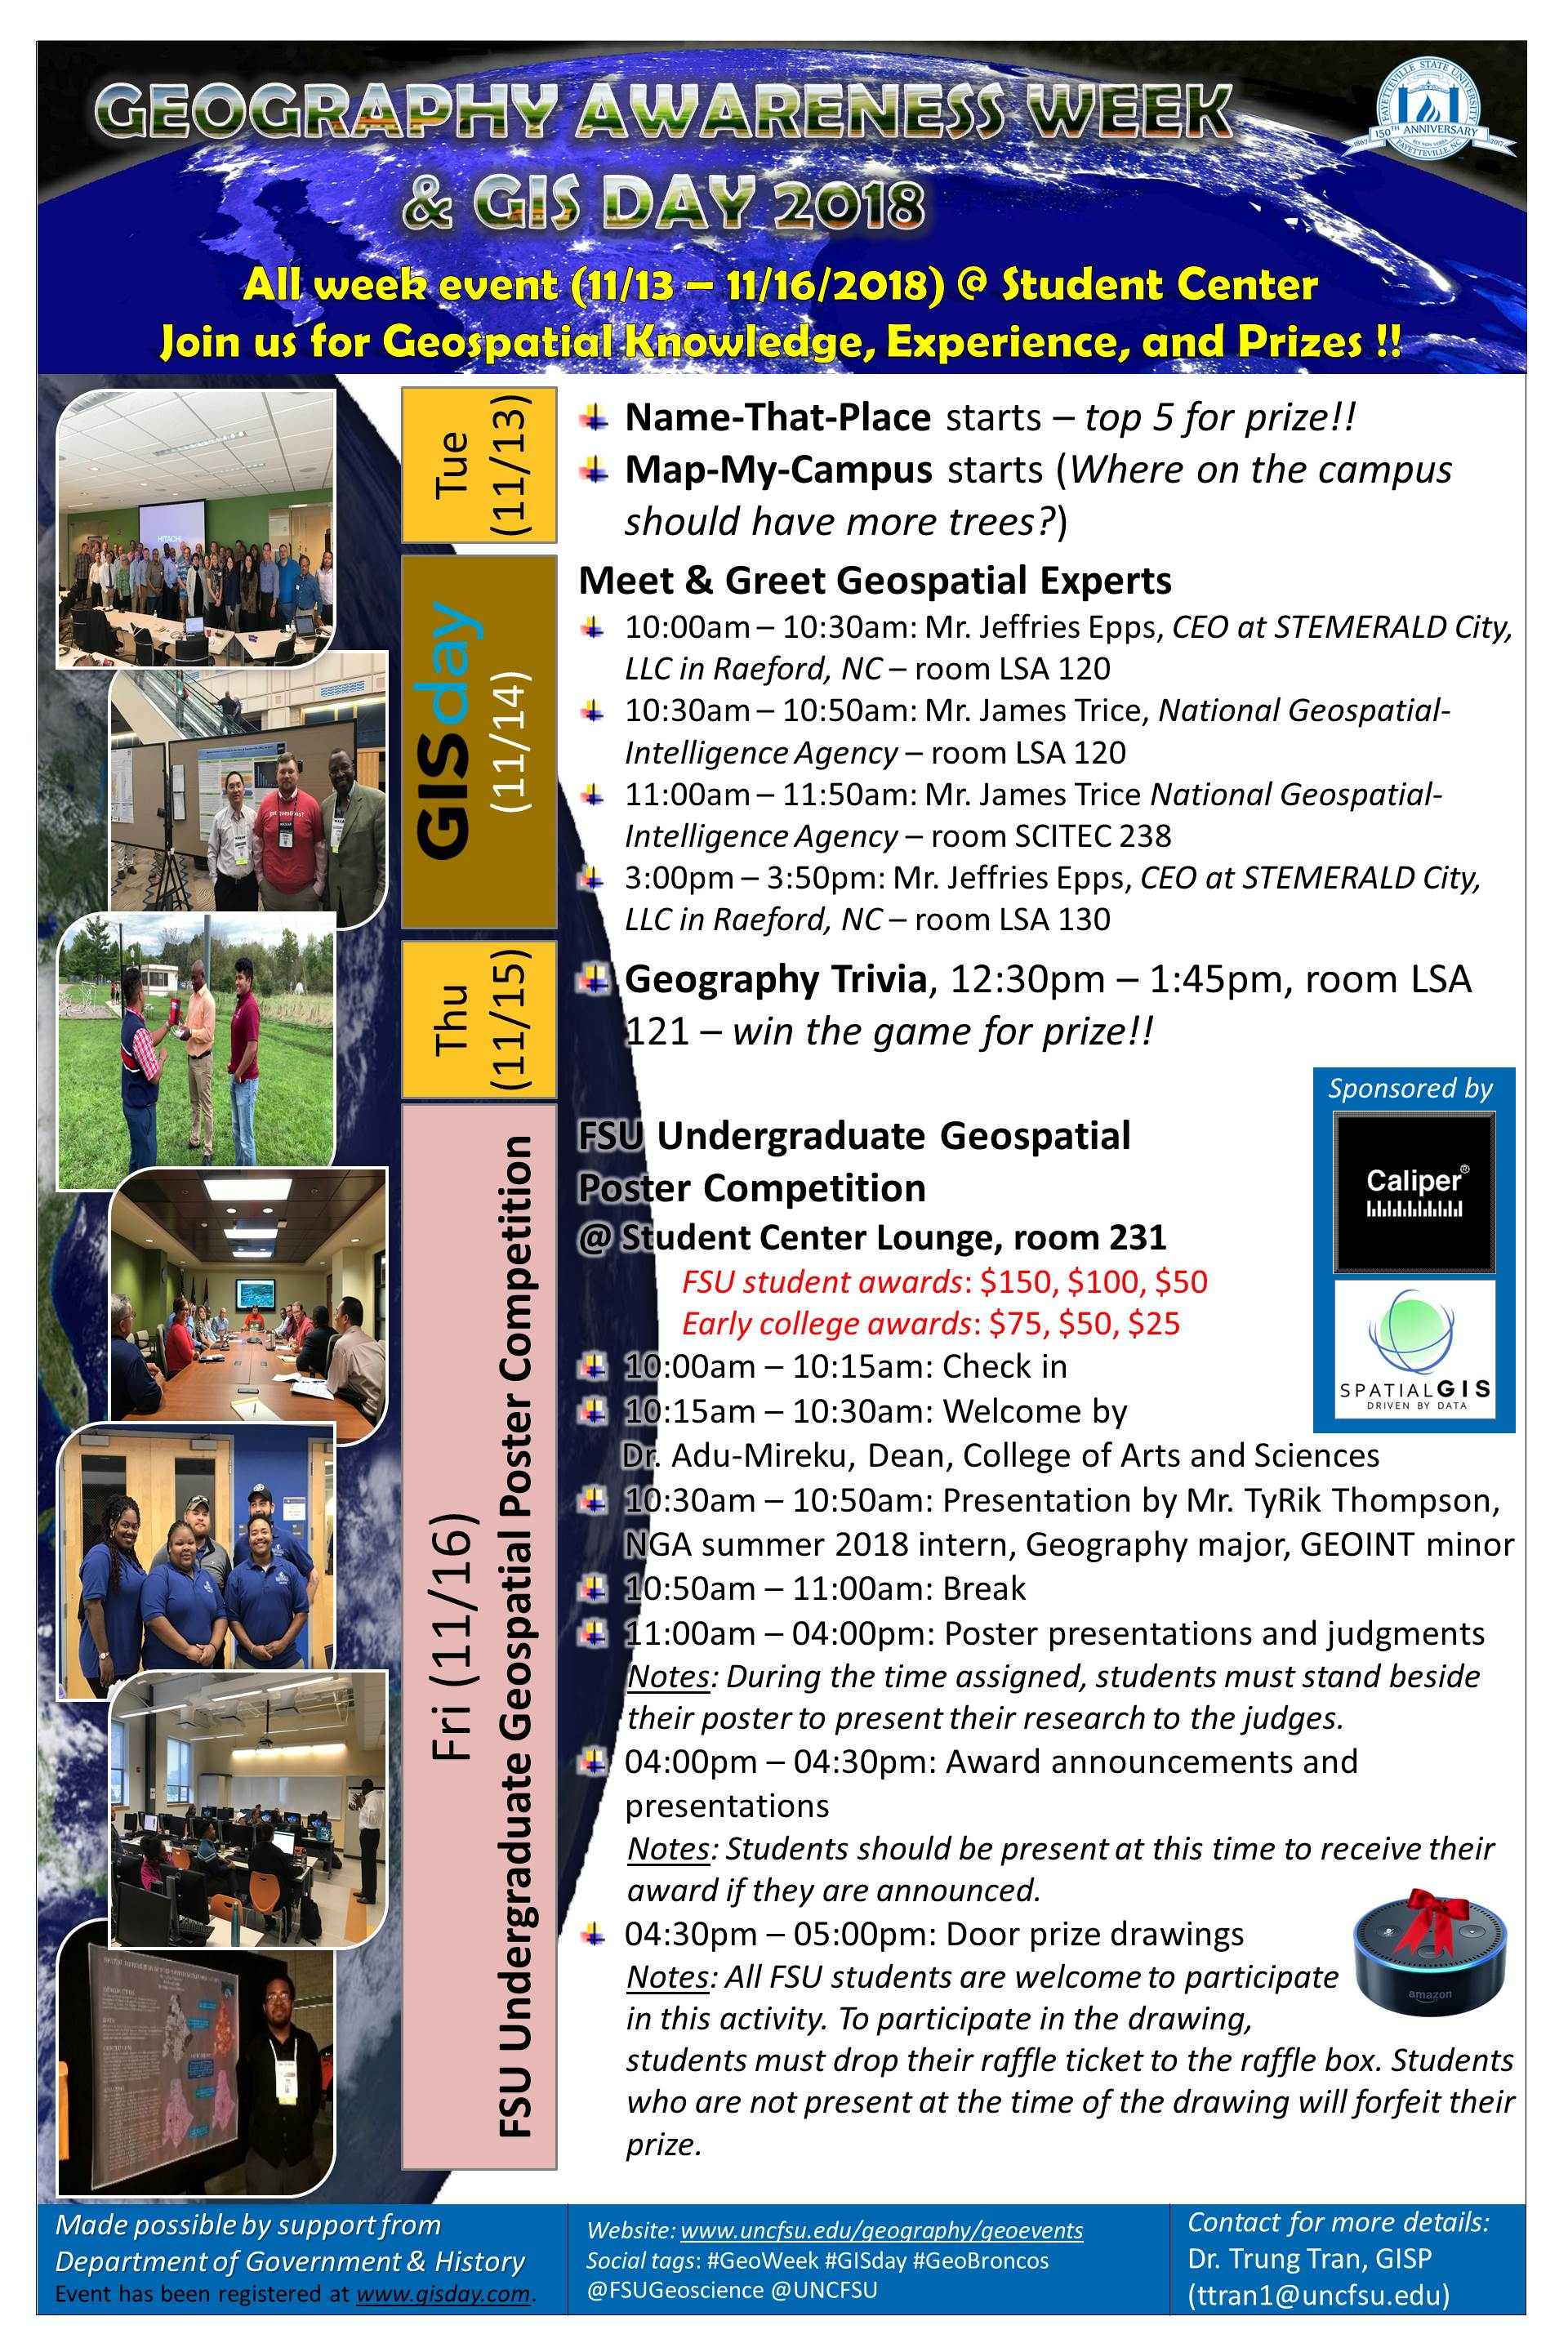 GeoWeek and GIS Day 2018